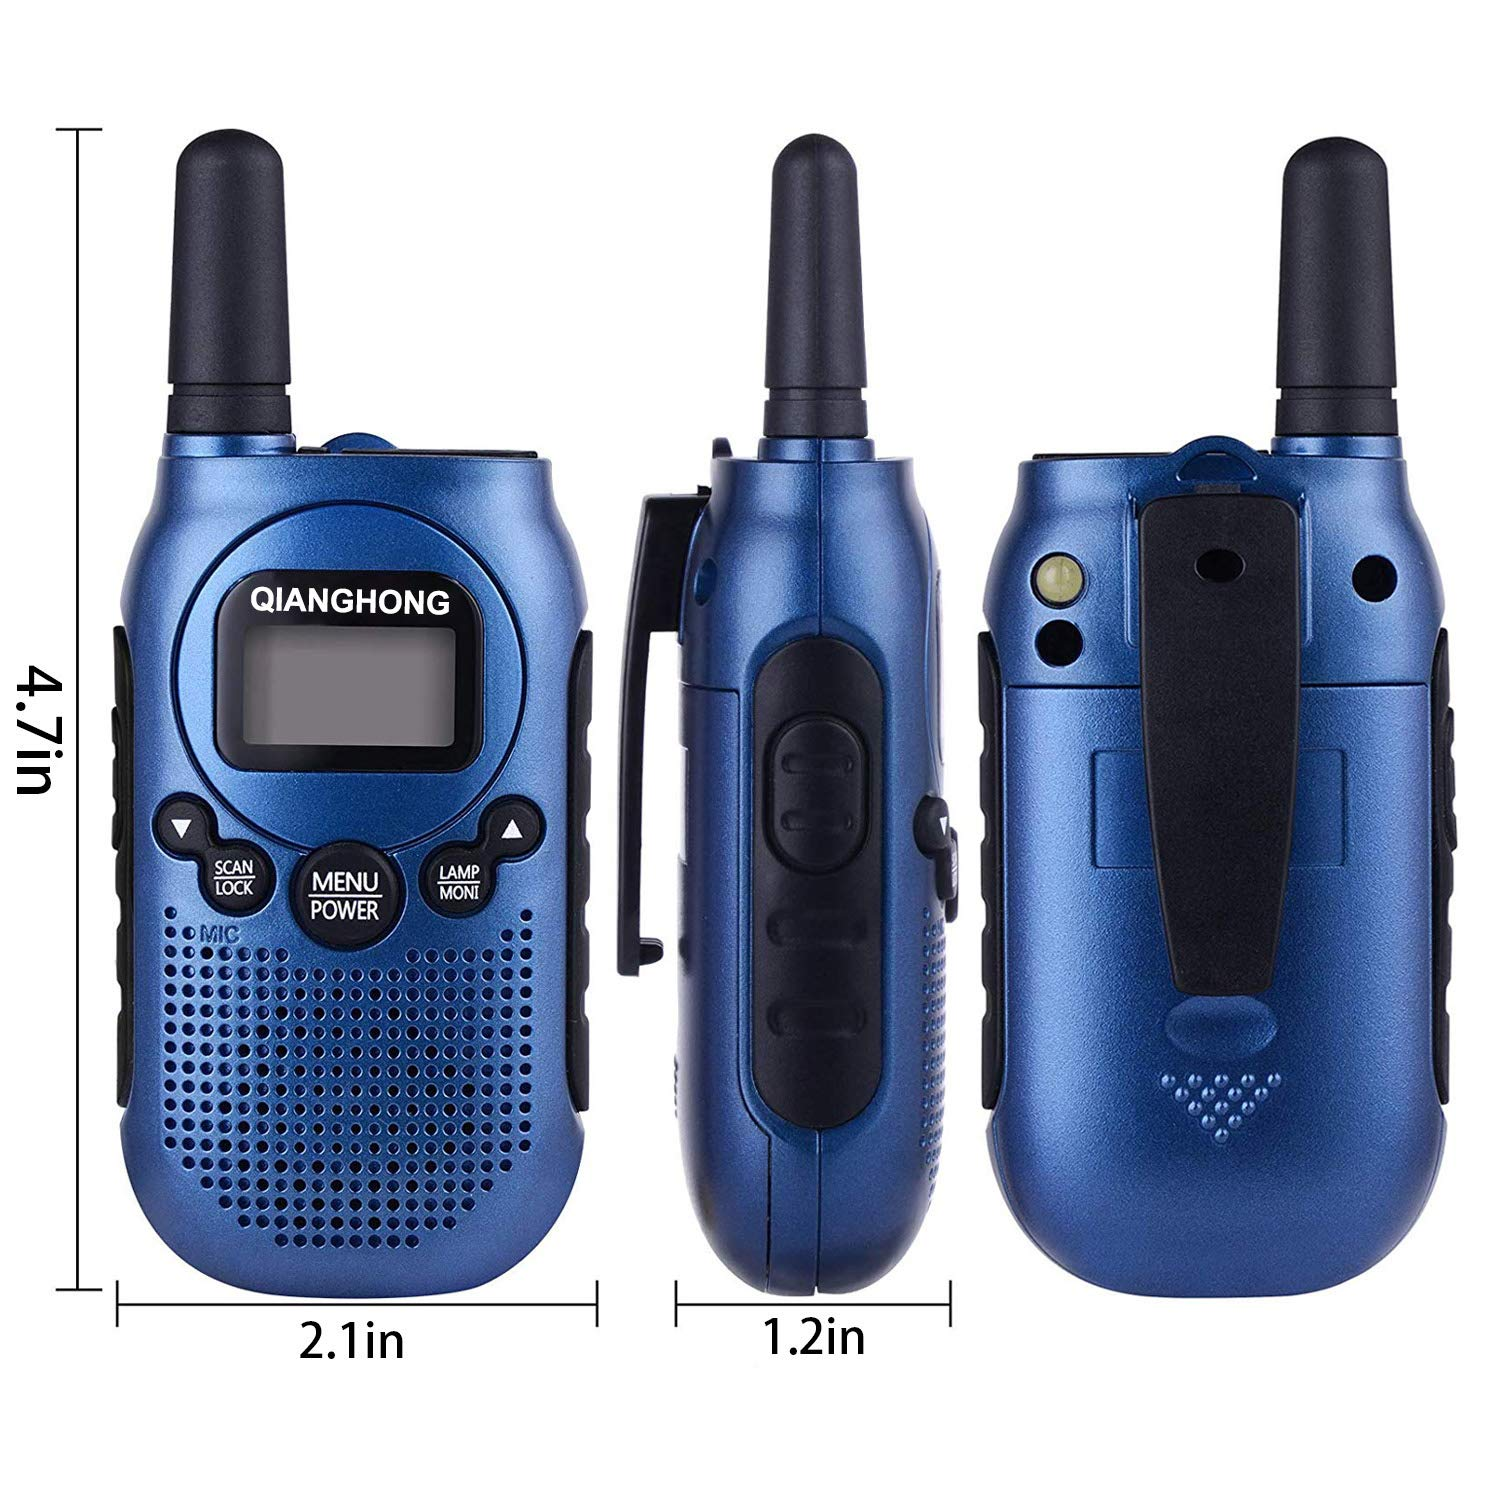 Qianghong Rechargeable Walkie Talkies for Kids Included Li-ion Battery and Charger (Red&Yellow&Blue) by Qianghong (Image #5)